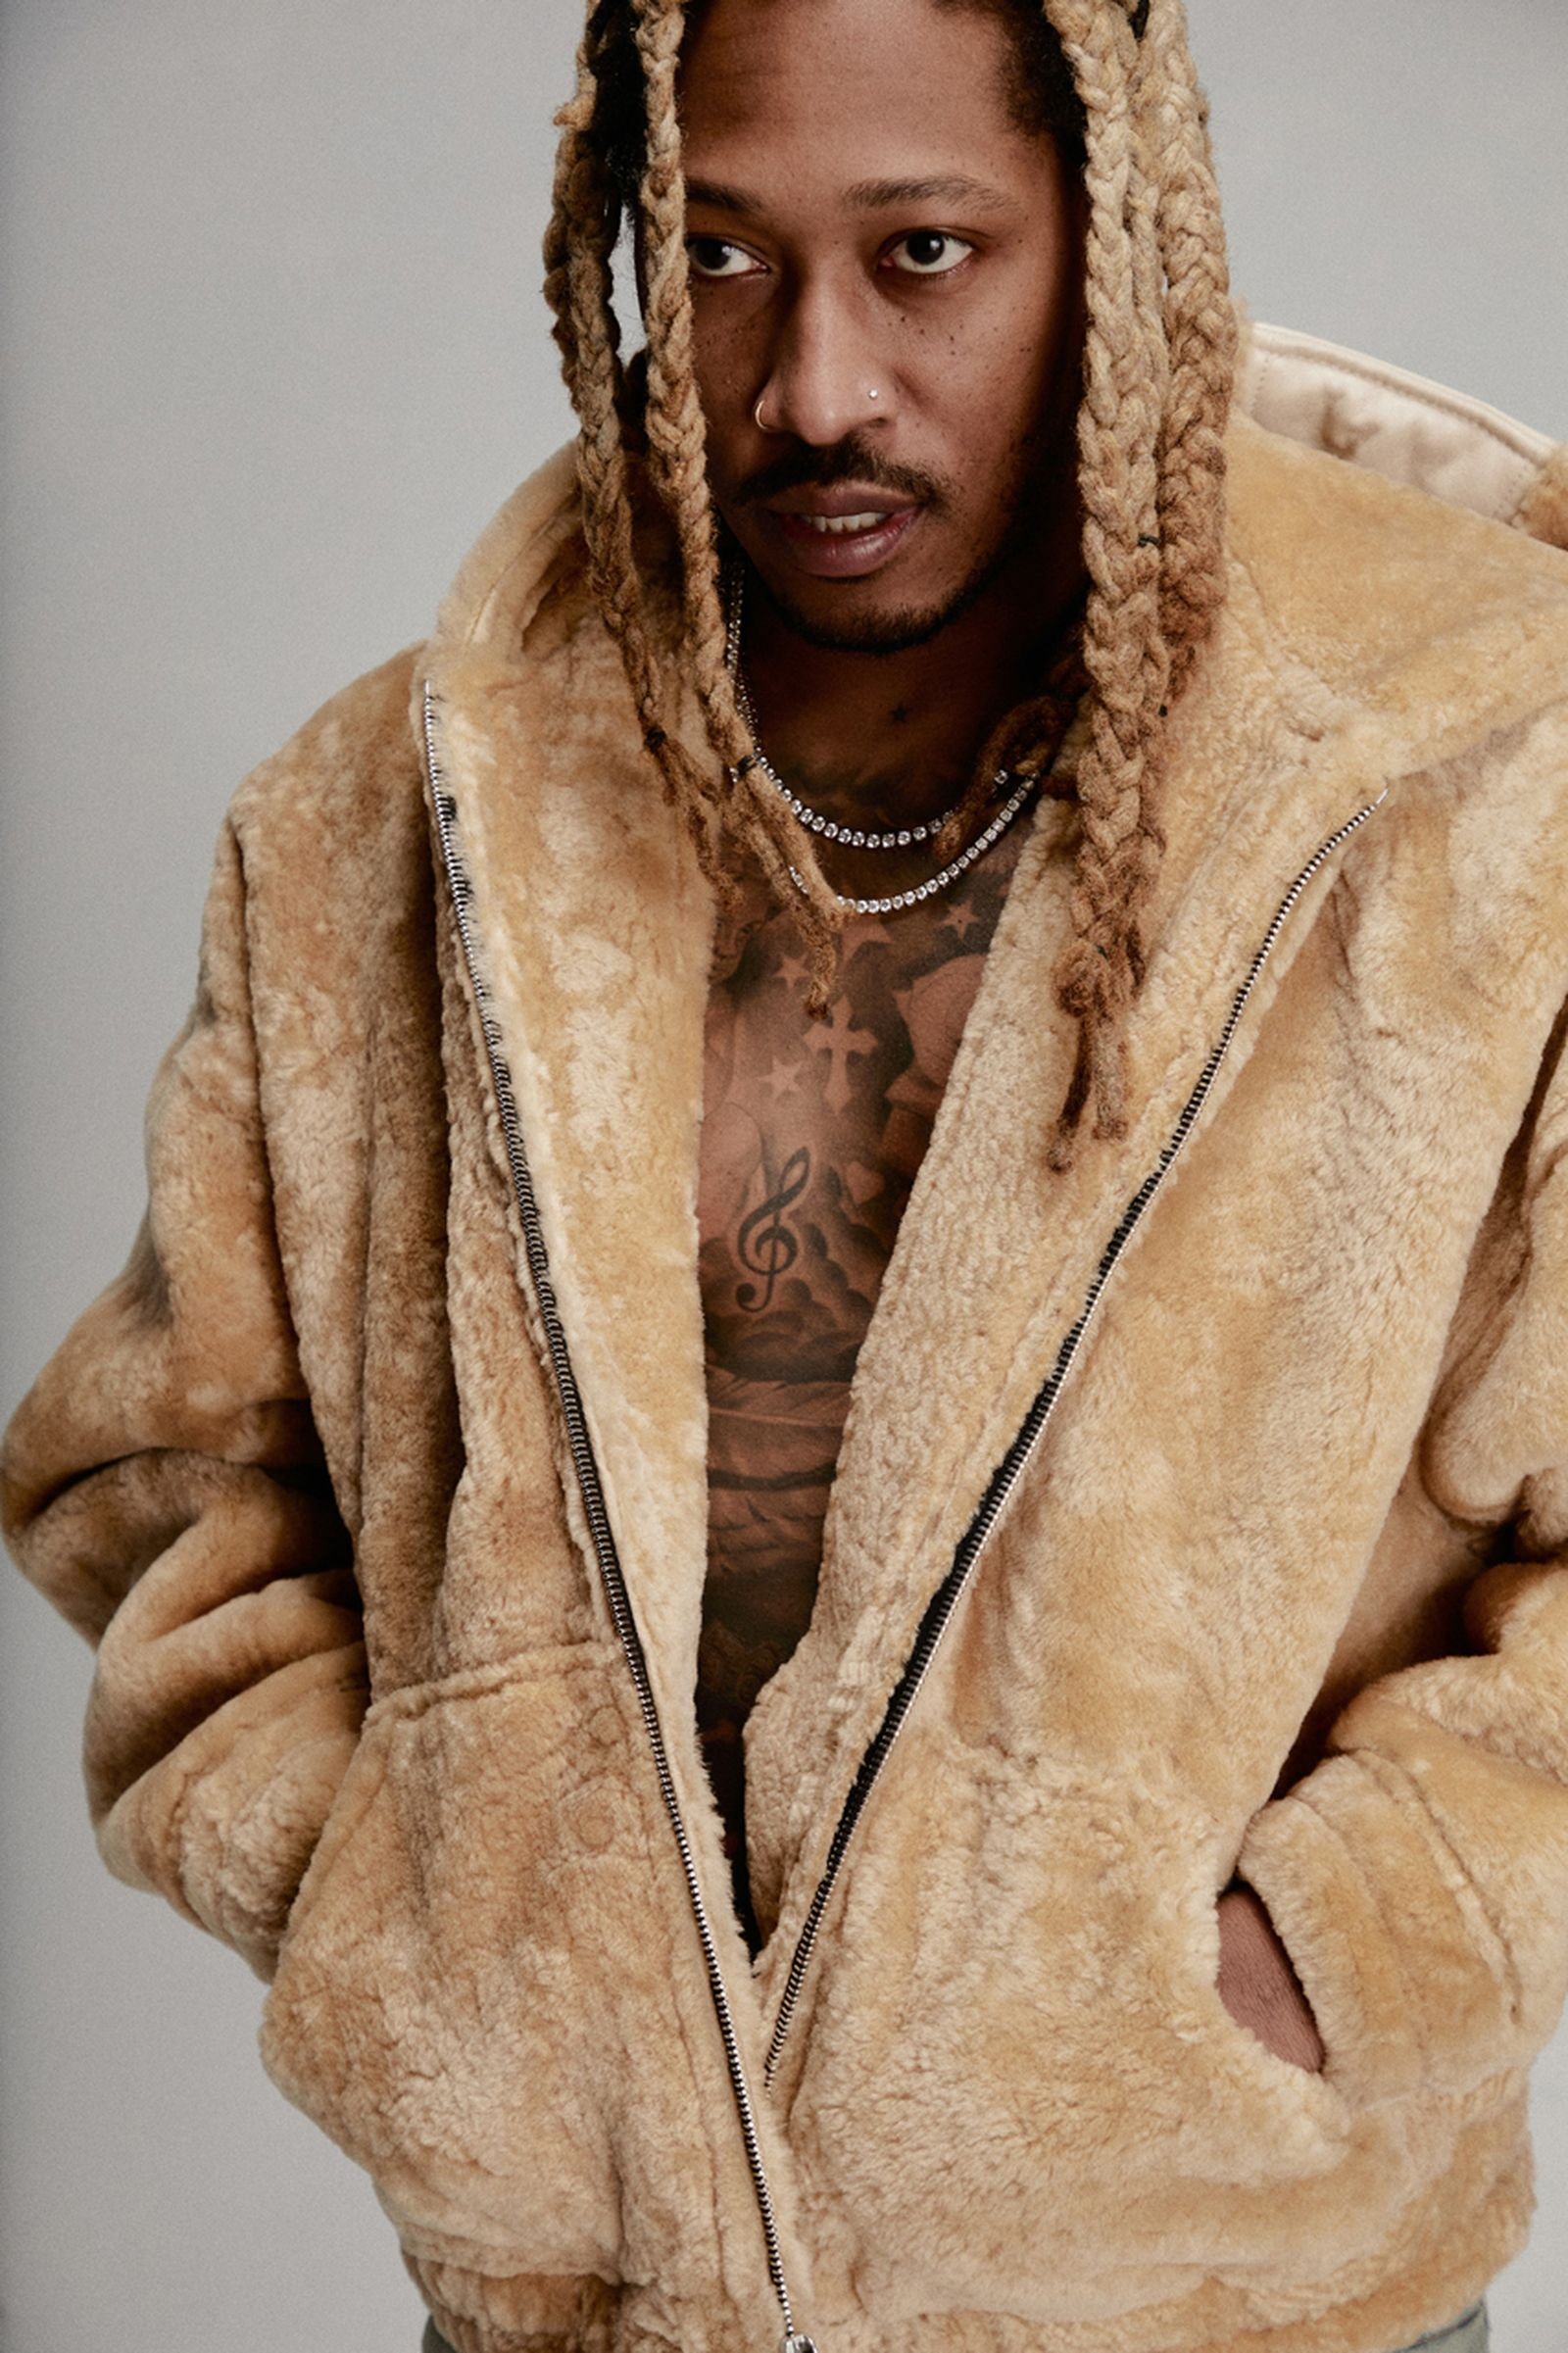 future-fronts-new-rhude-campaign-11